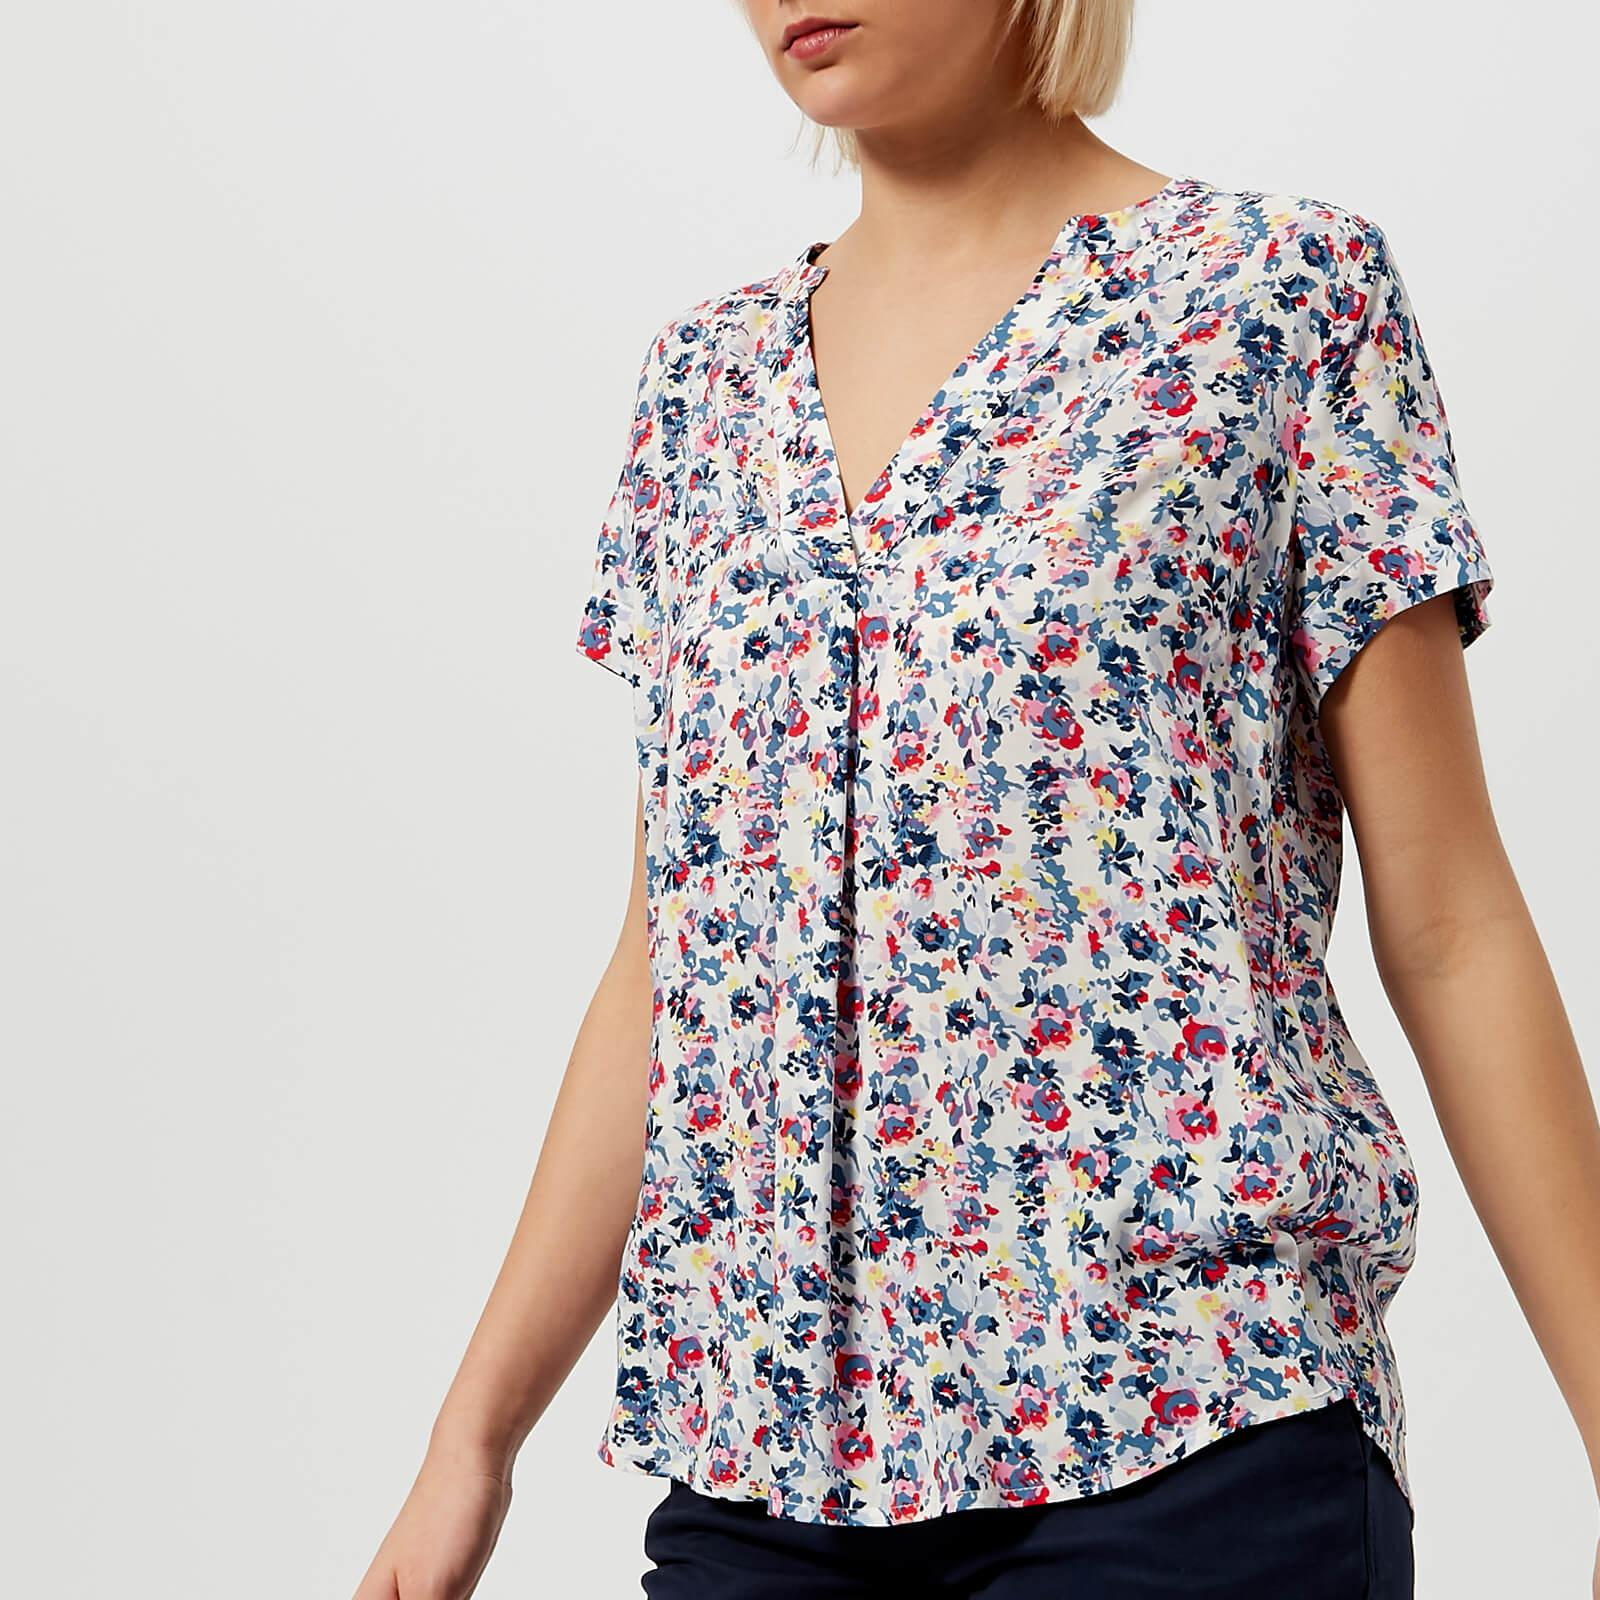 d4e9d4325503e6 Joules Iona Short Sleeve Blouse in Blue - Lyst